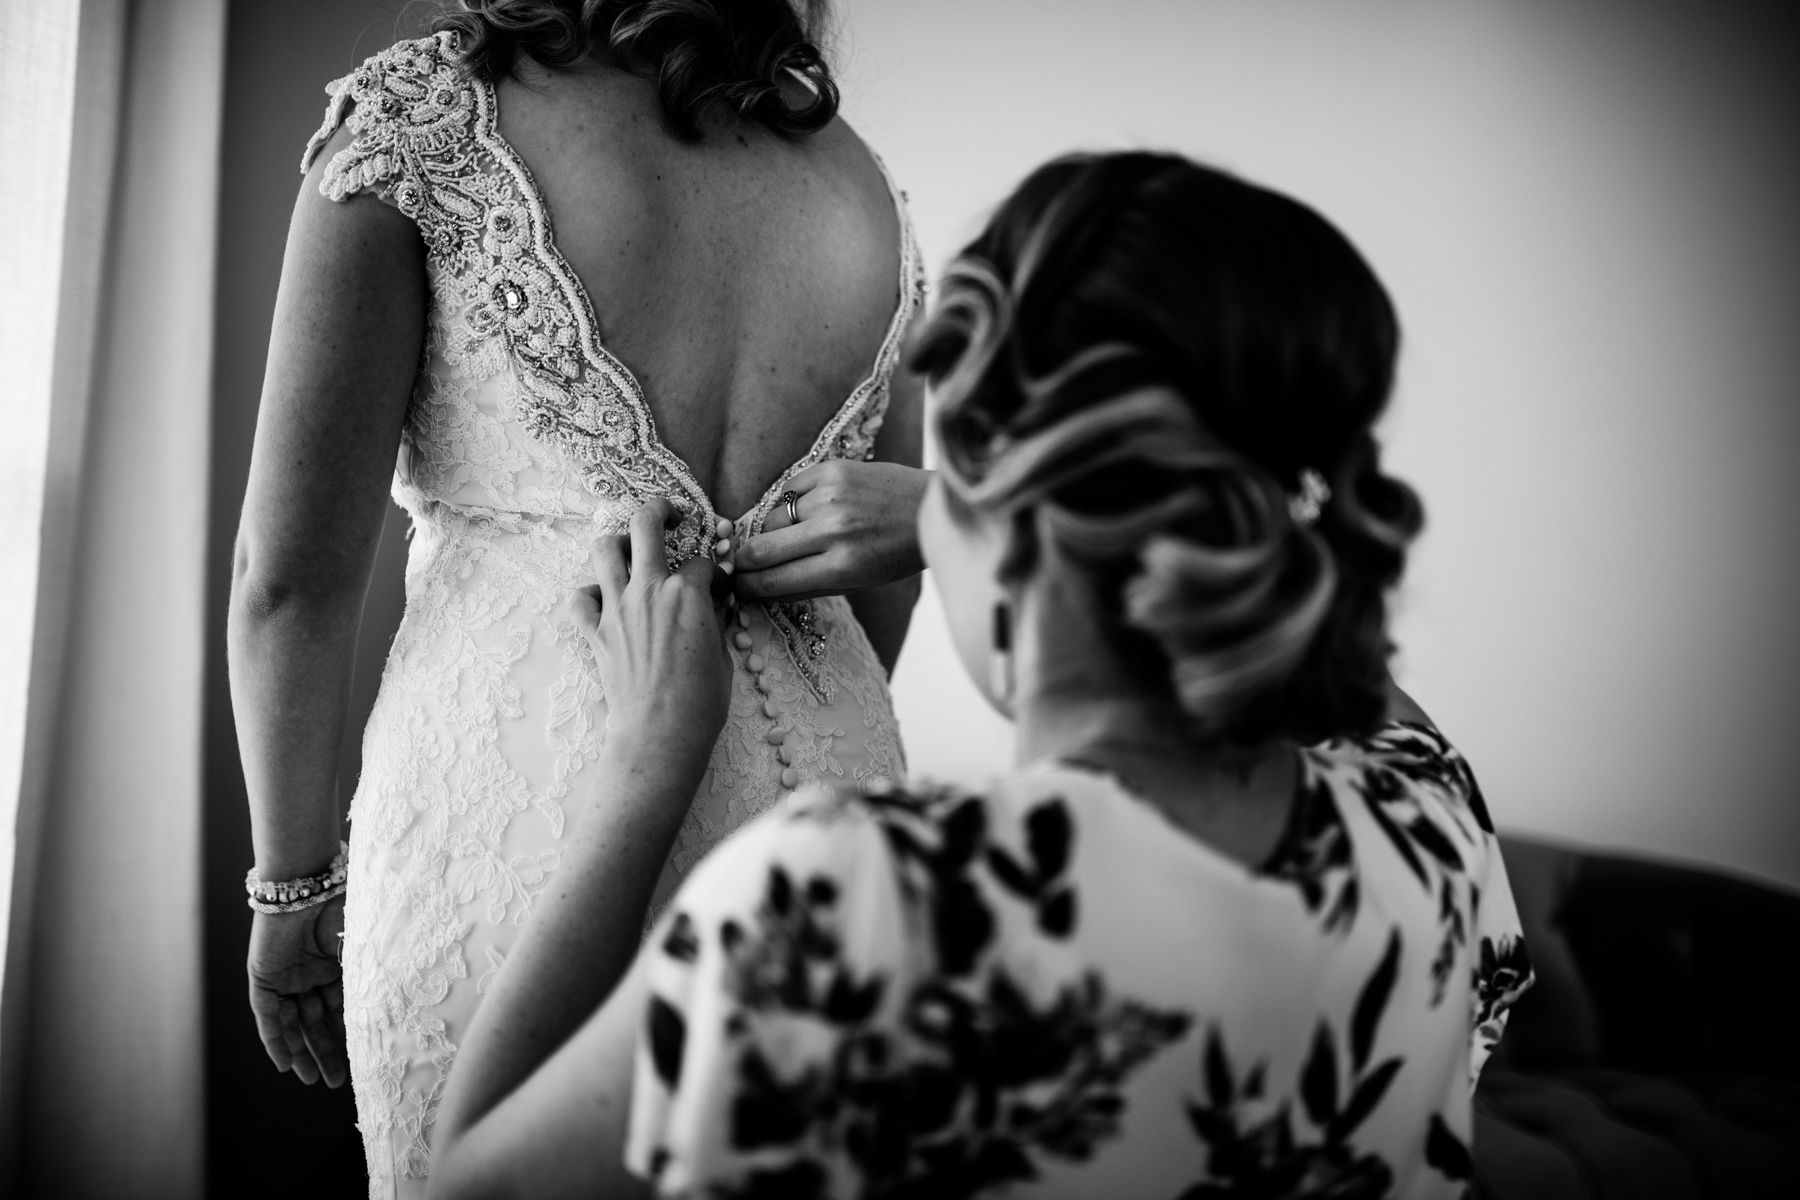 bride dress getting buttoned